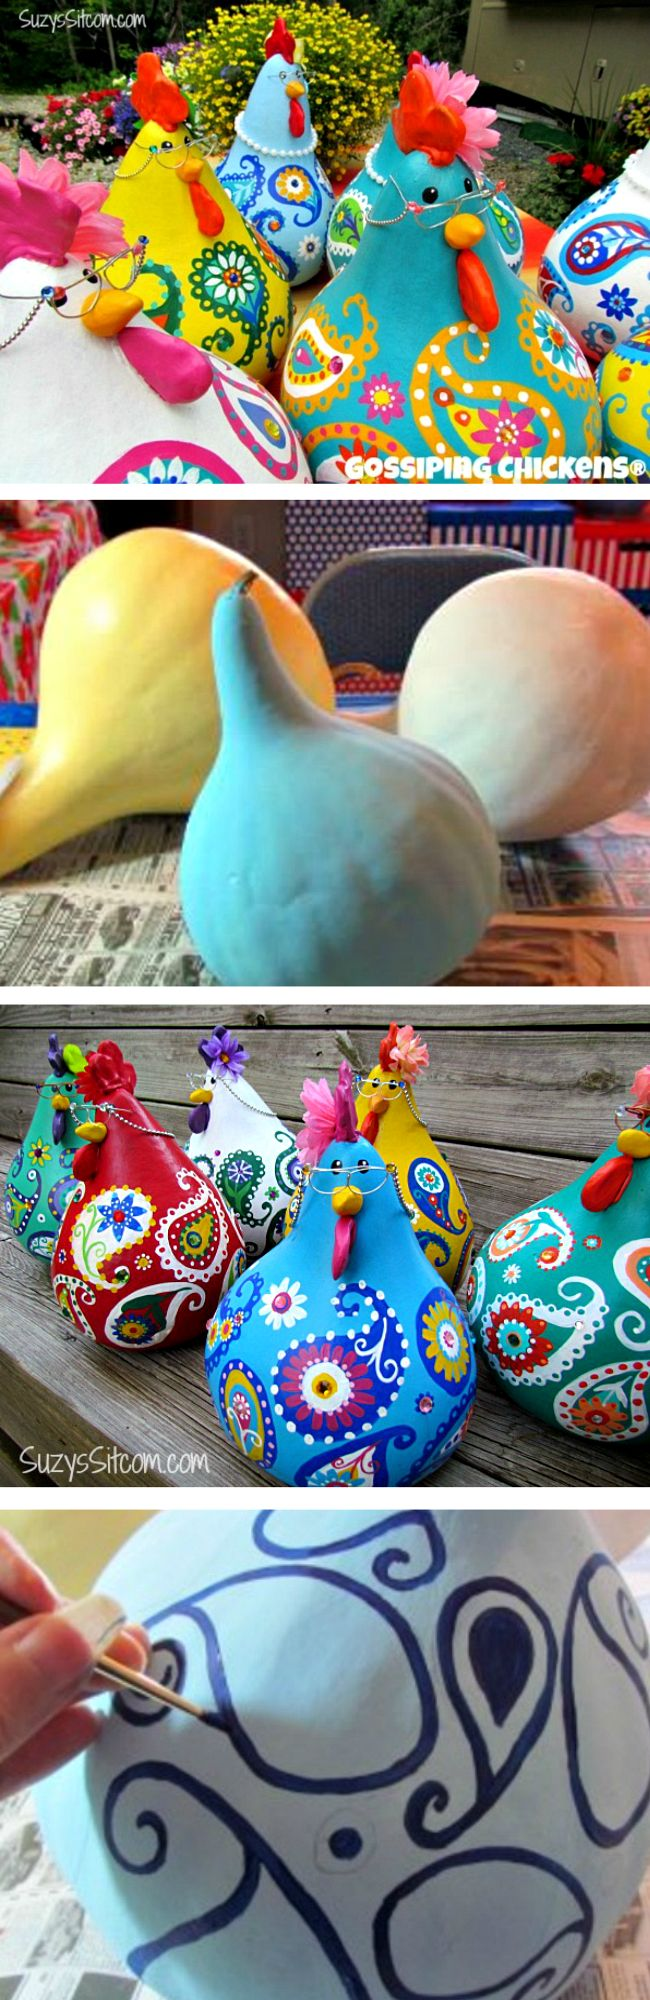 We fell head over heels for these Painted Chicken Gourds and you will too! They sure are cute and you won't be able to wait to make a whole family of them!